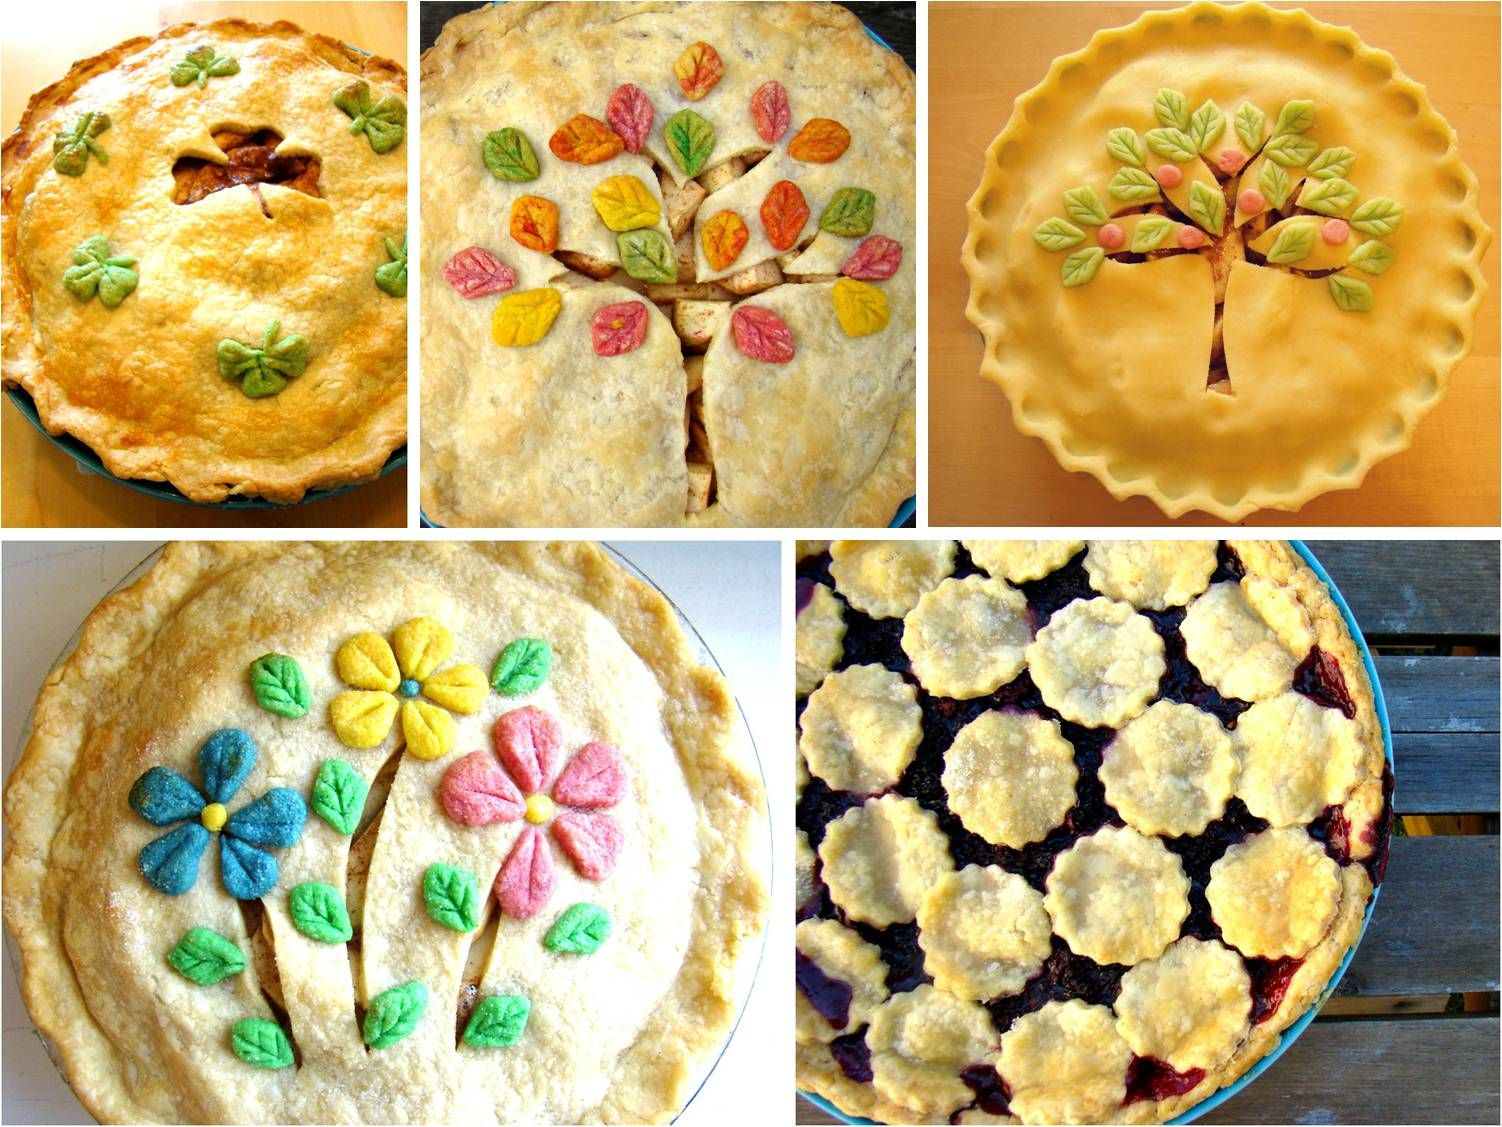 Decorated Pies - LOVE it!